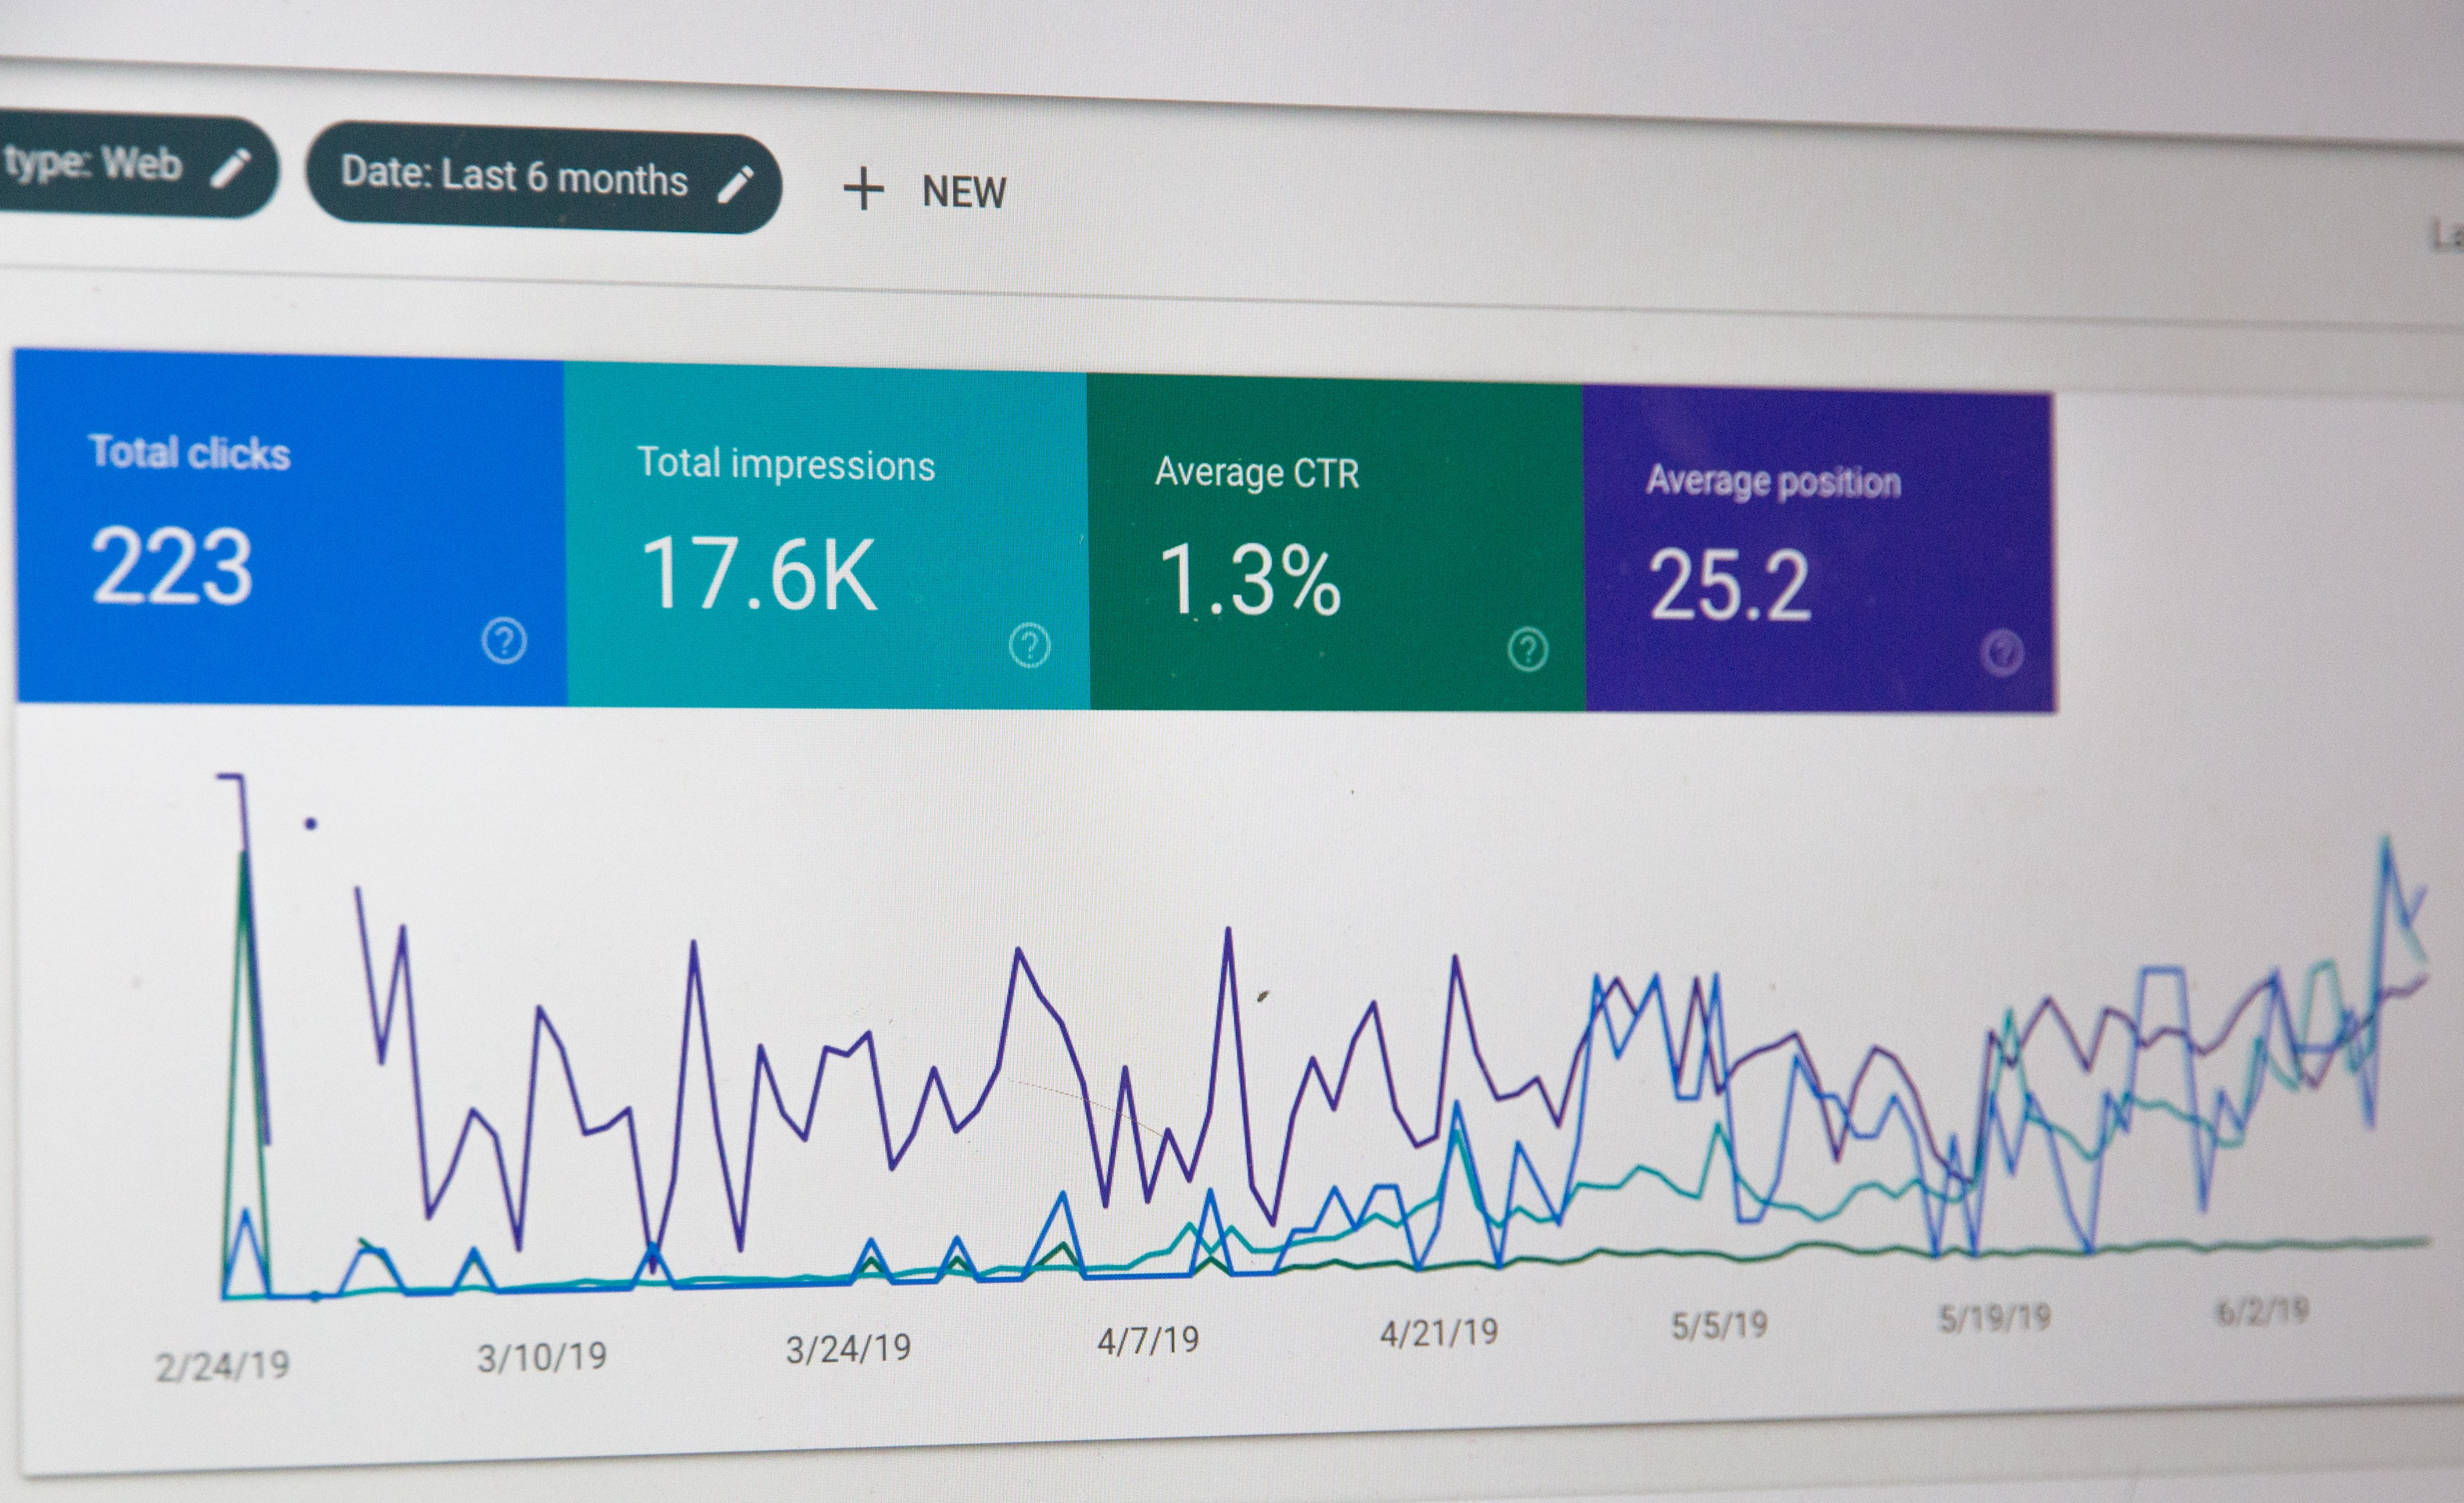 SEO officials will pay more attention to stats and scores, rather than content